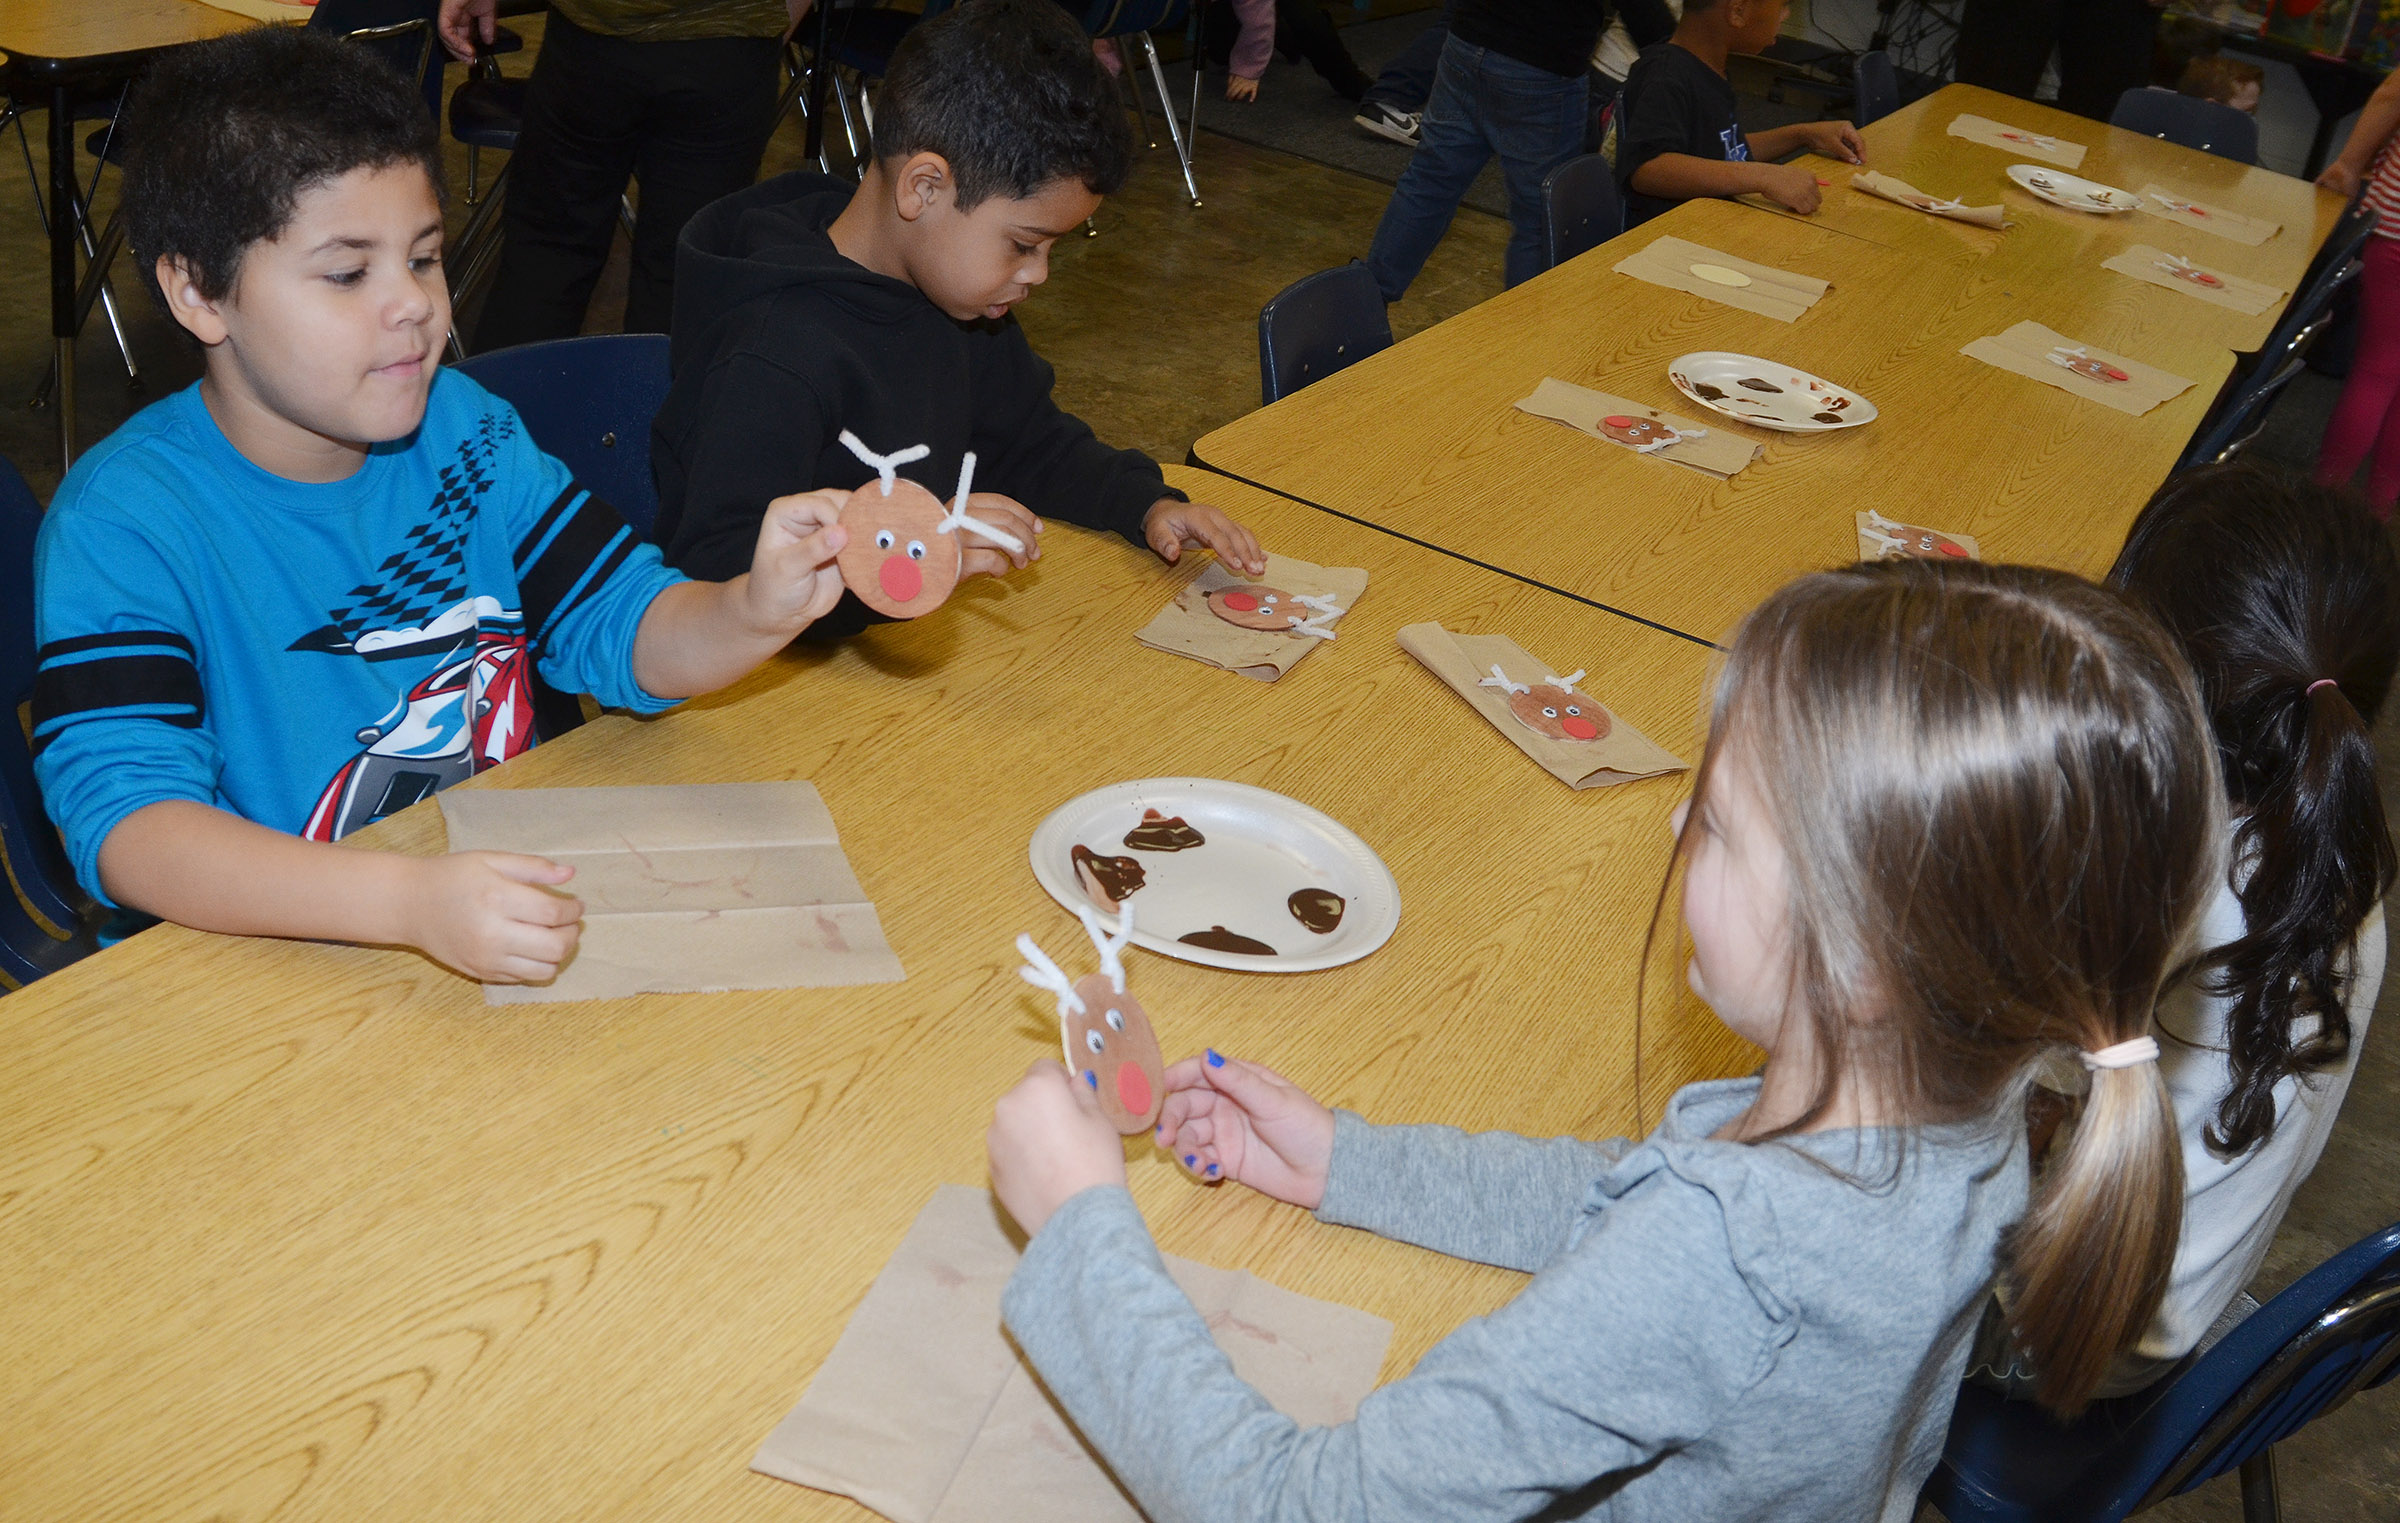 CES first-graders NyJah Vaught, at left, and Delaney Staton show each other their finished reindeer ornaments.